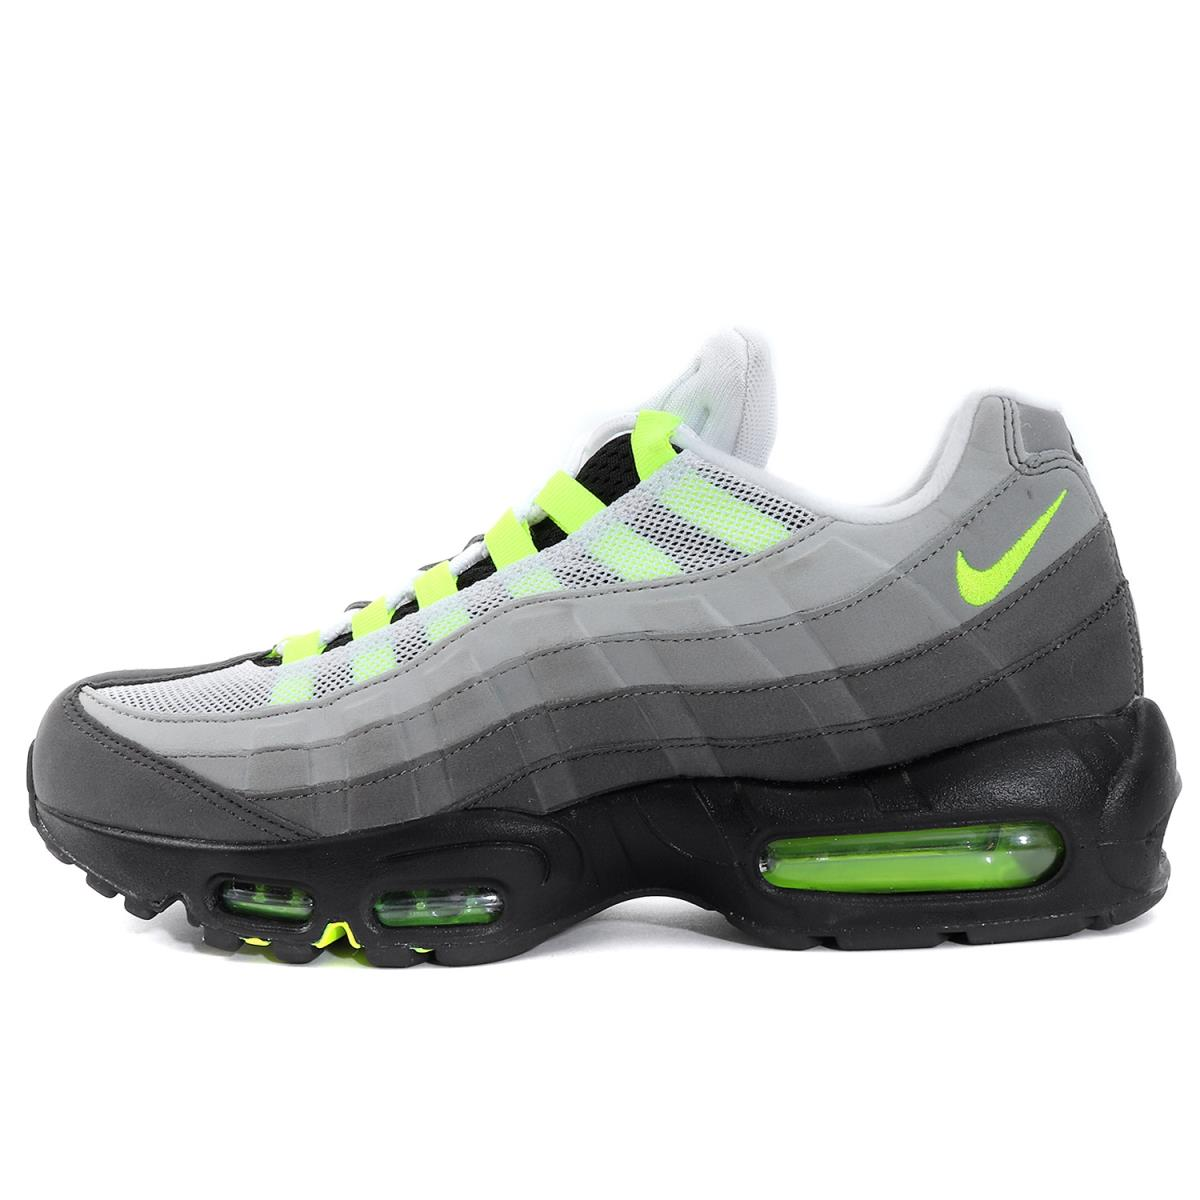 low priced c6d1c 1f4db NIKE (Nike) AIR MAX 95 OG VOLT NEON (/ 554,970-071 made in 2018) black X  bolt US9(27cm)